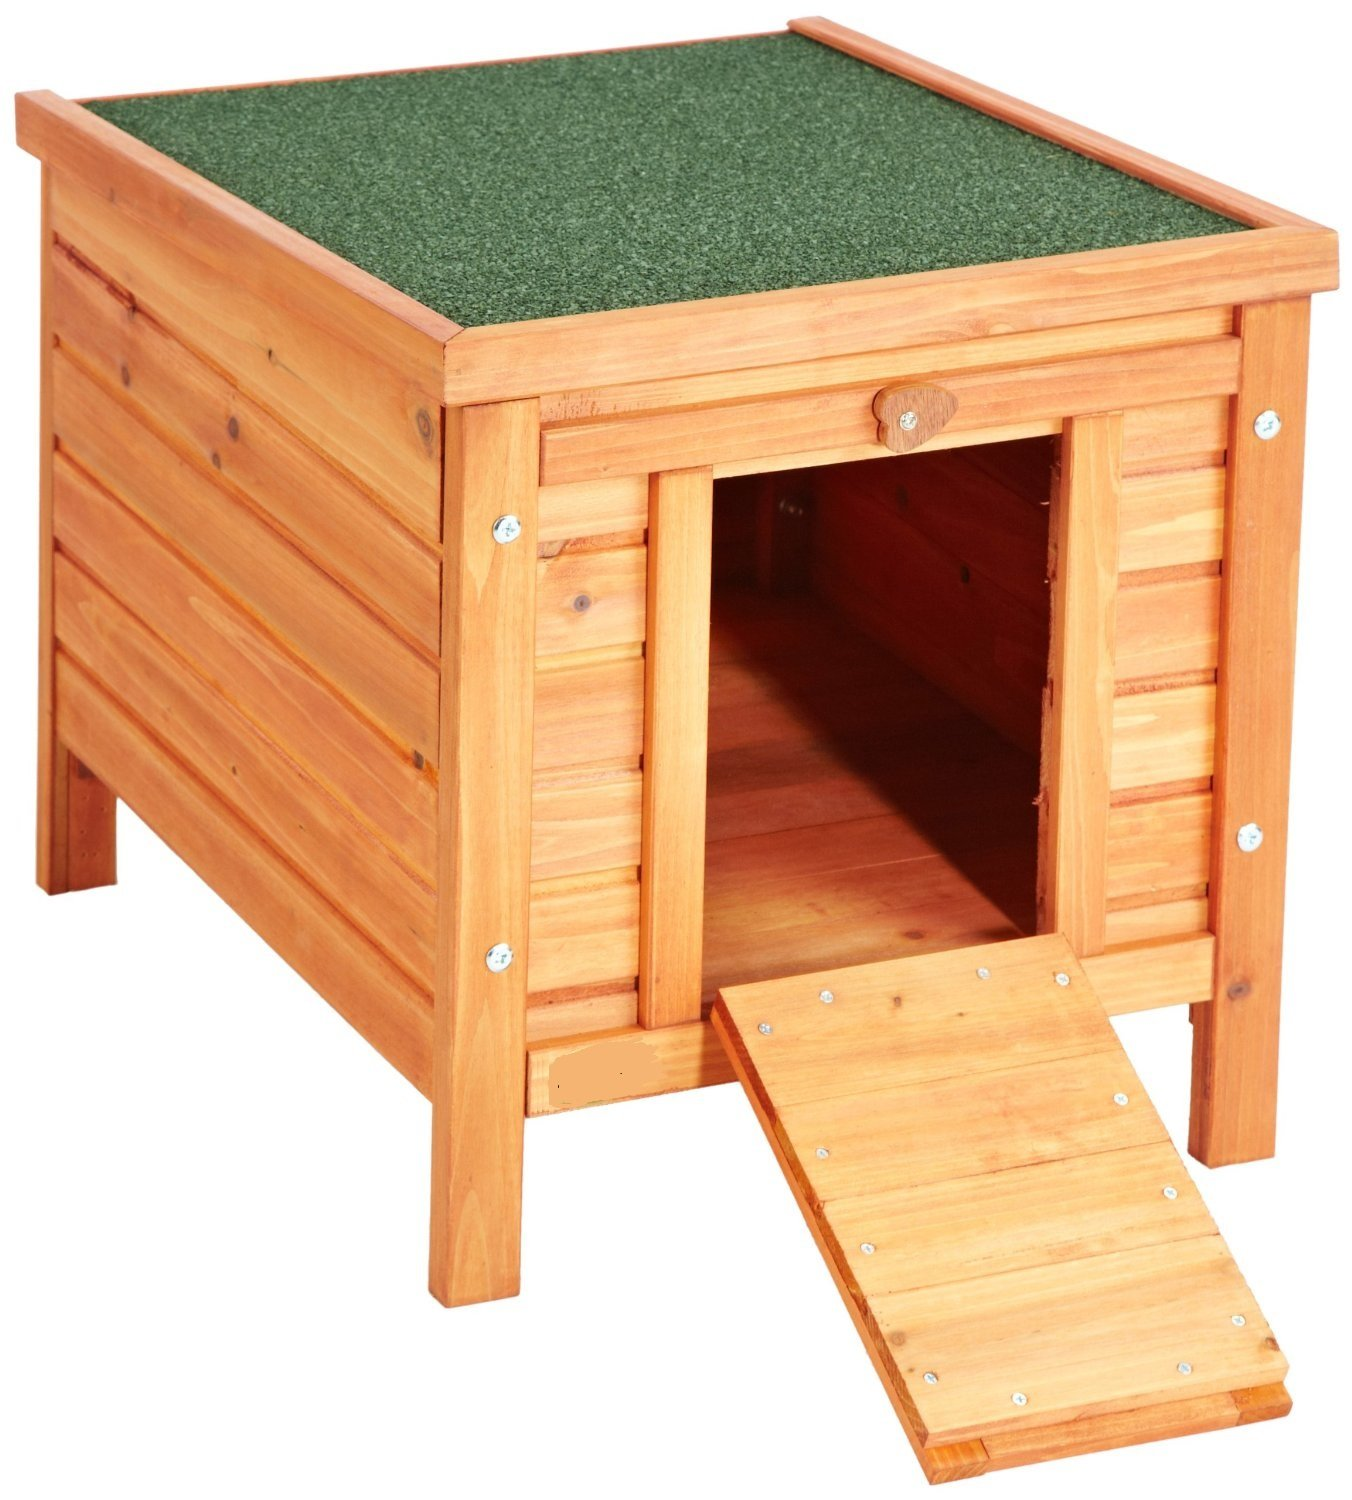 VivaPet Cat Puppy Rabbit Guinea Pig Wooden Hide House 50 x 42